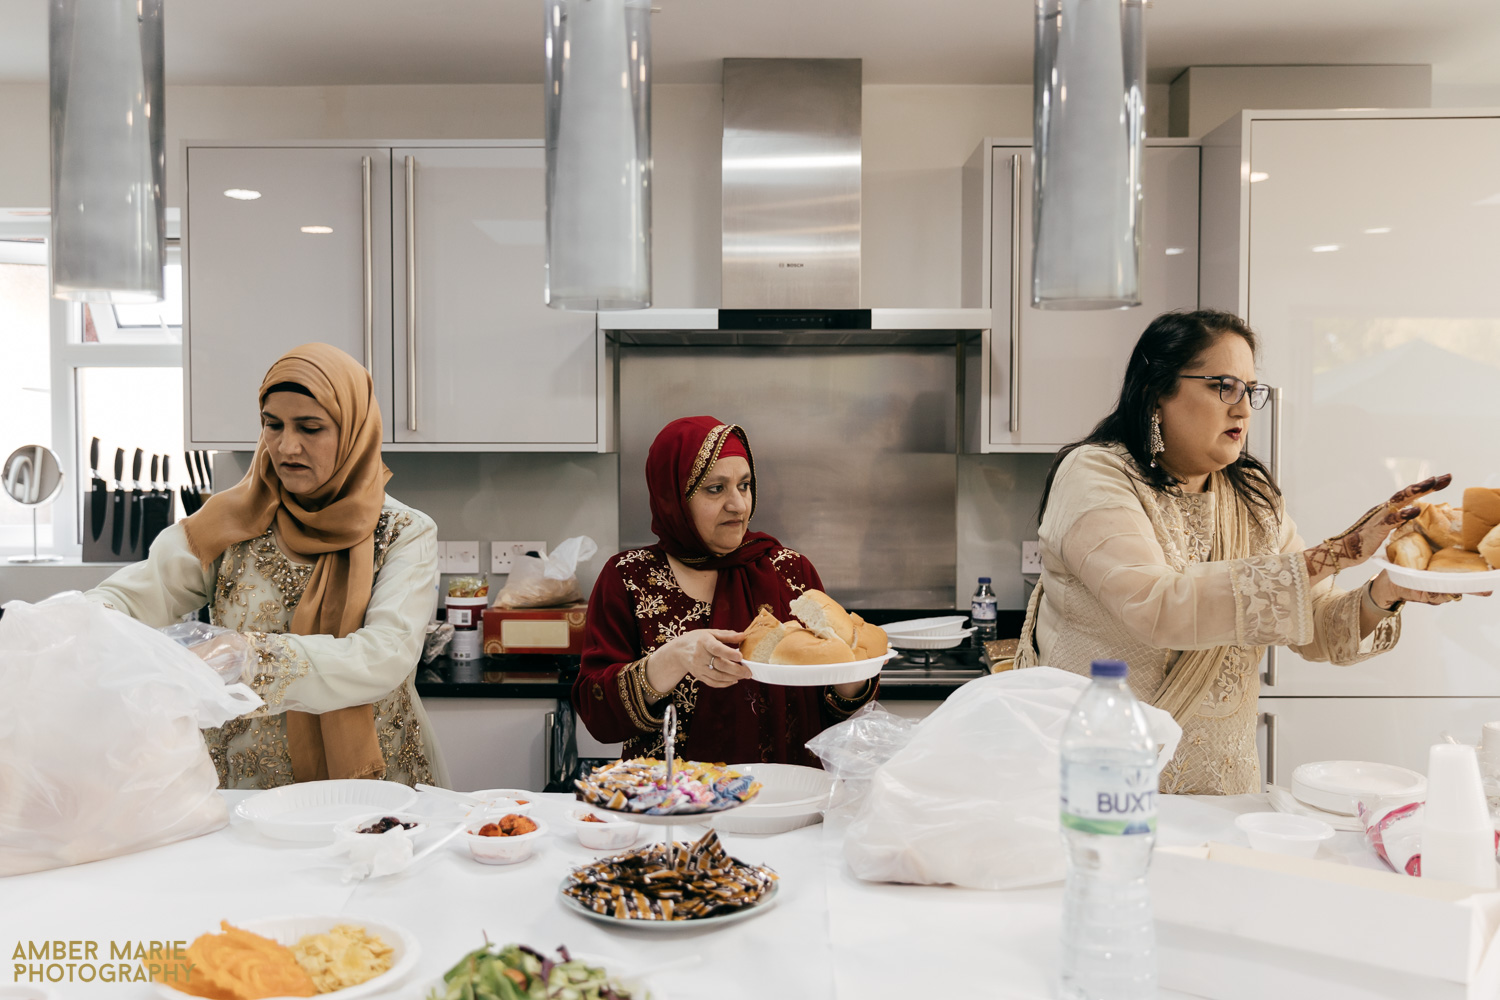 Family helping serve food in kitchen at Indian wedding reception at home